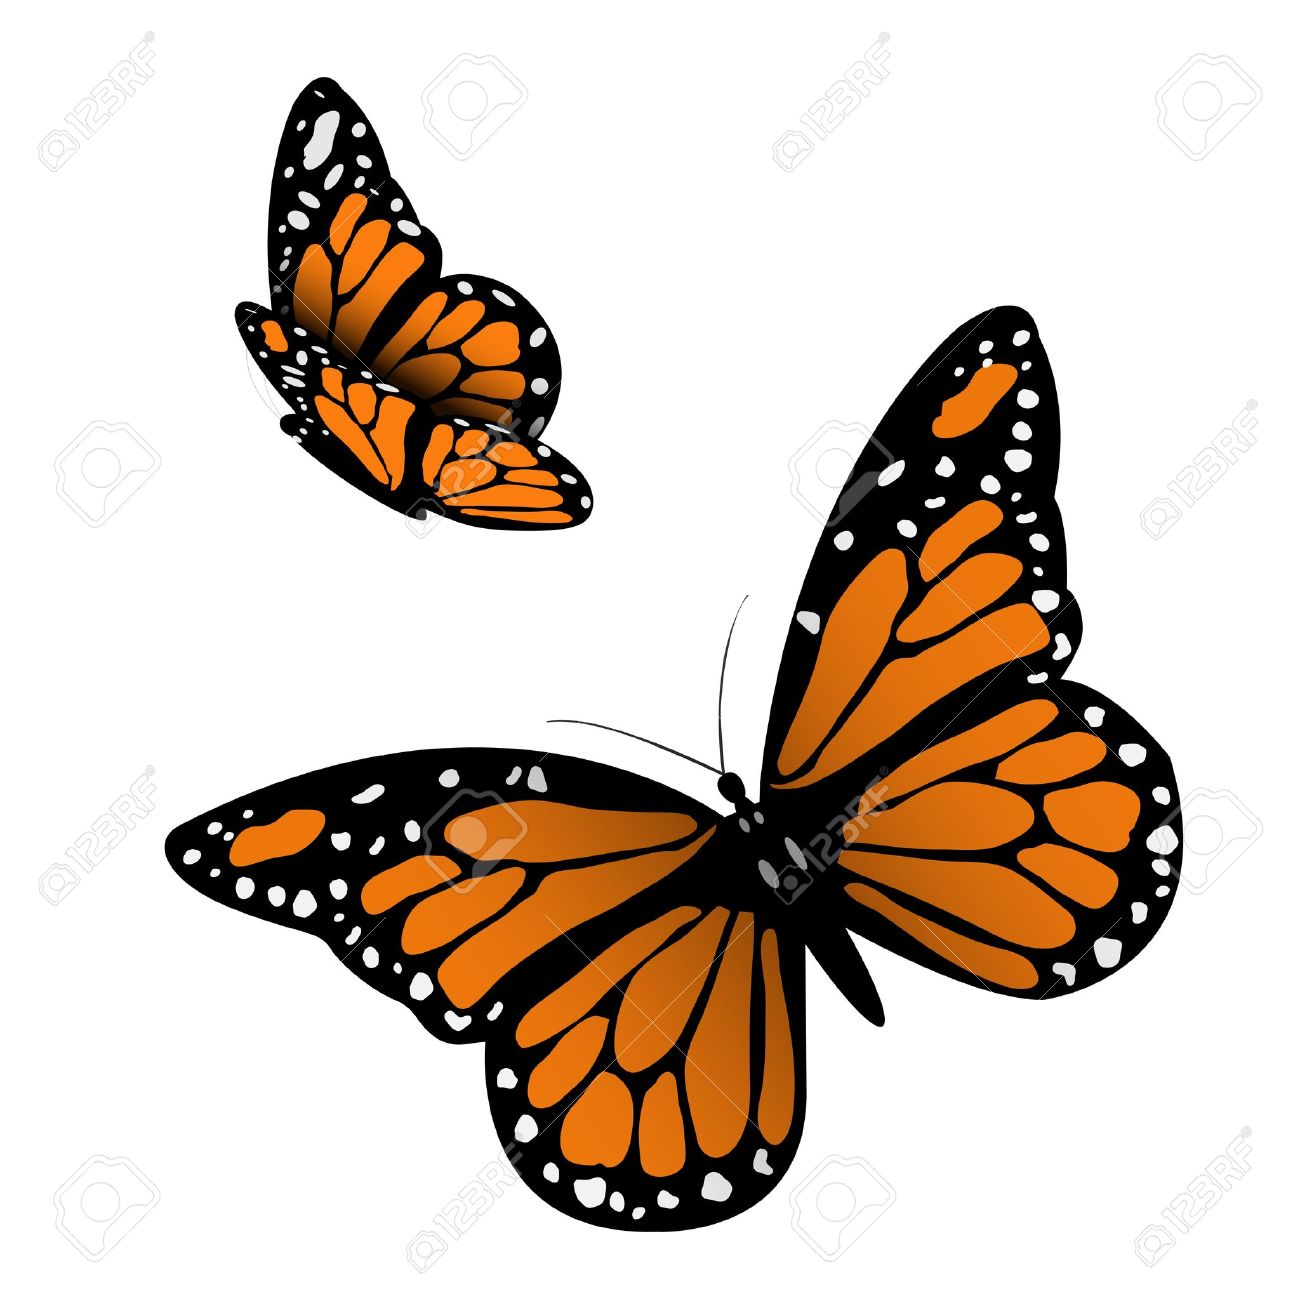 hight resolution of monarch butterfly illustration stock vector 17911730